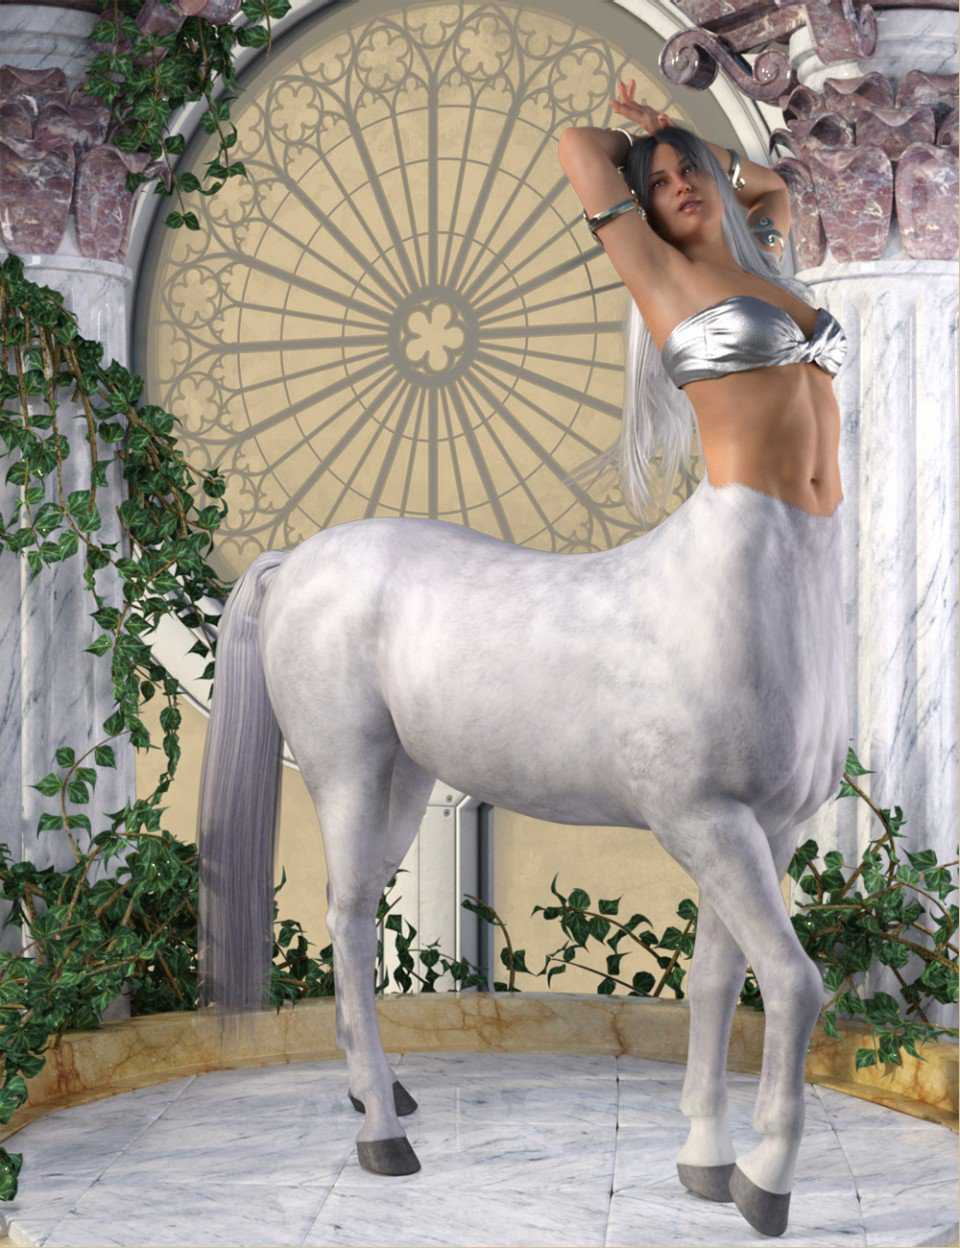 Centaur Action Poses for Genesis 8 Female Centaur